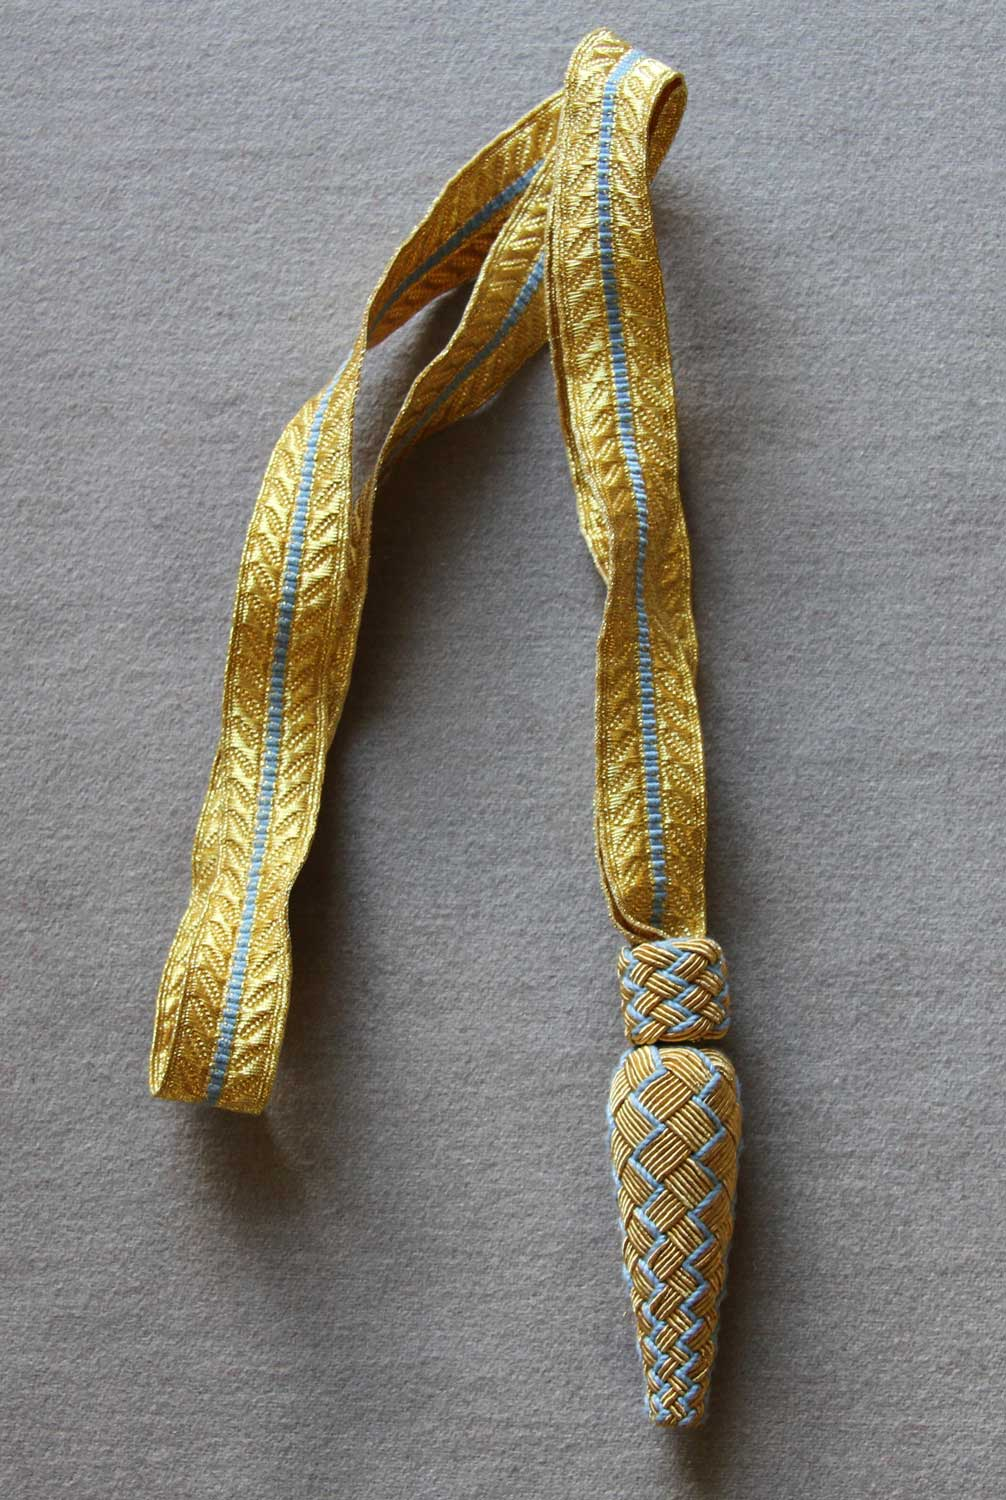 Royal Air Force Sword Knot (strap)